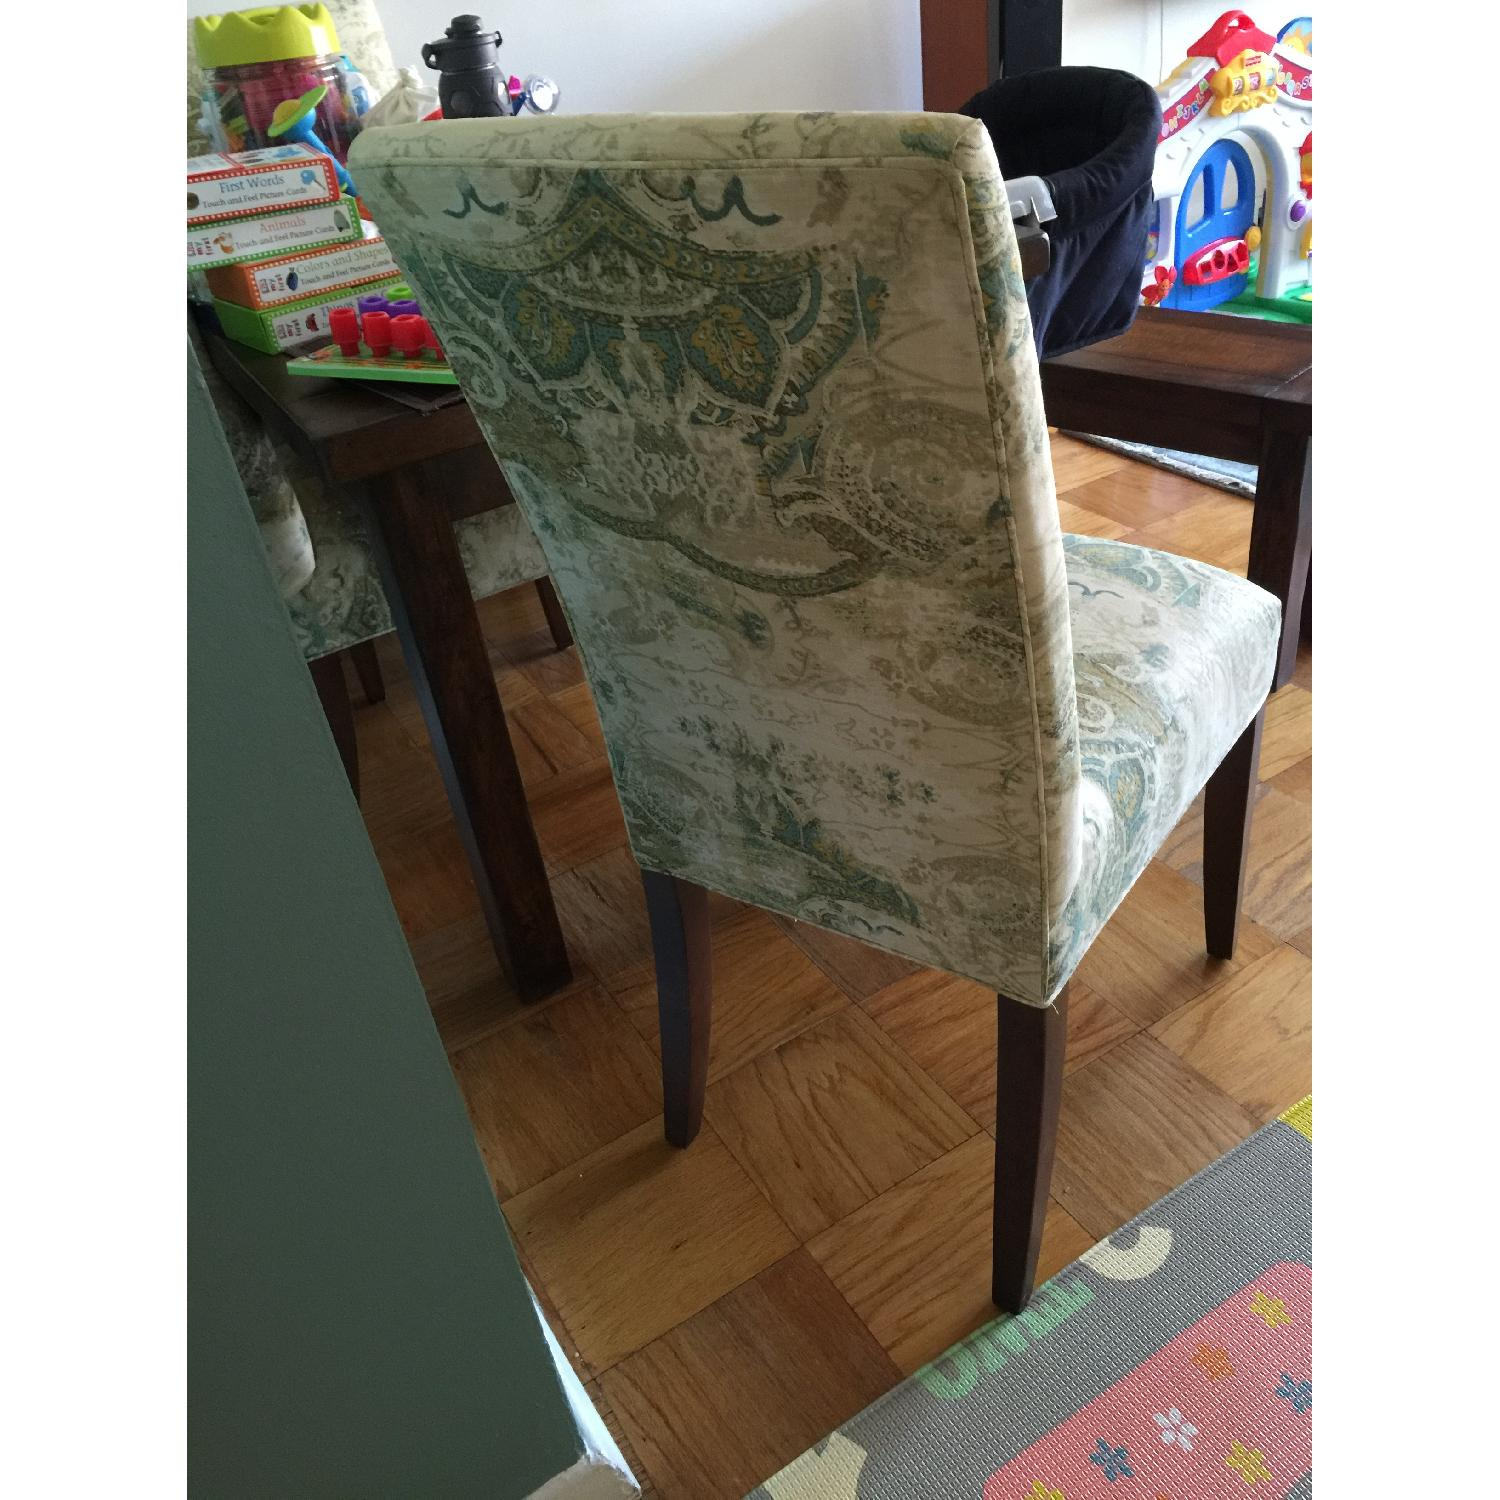 ABC Carpet and Home High Back Upholstered Dining Chairs - image-2